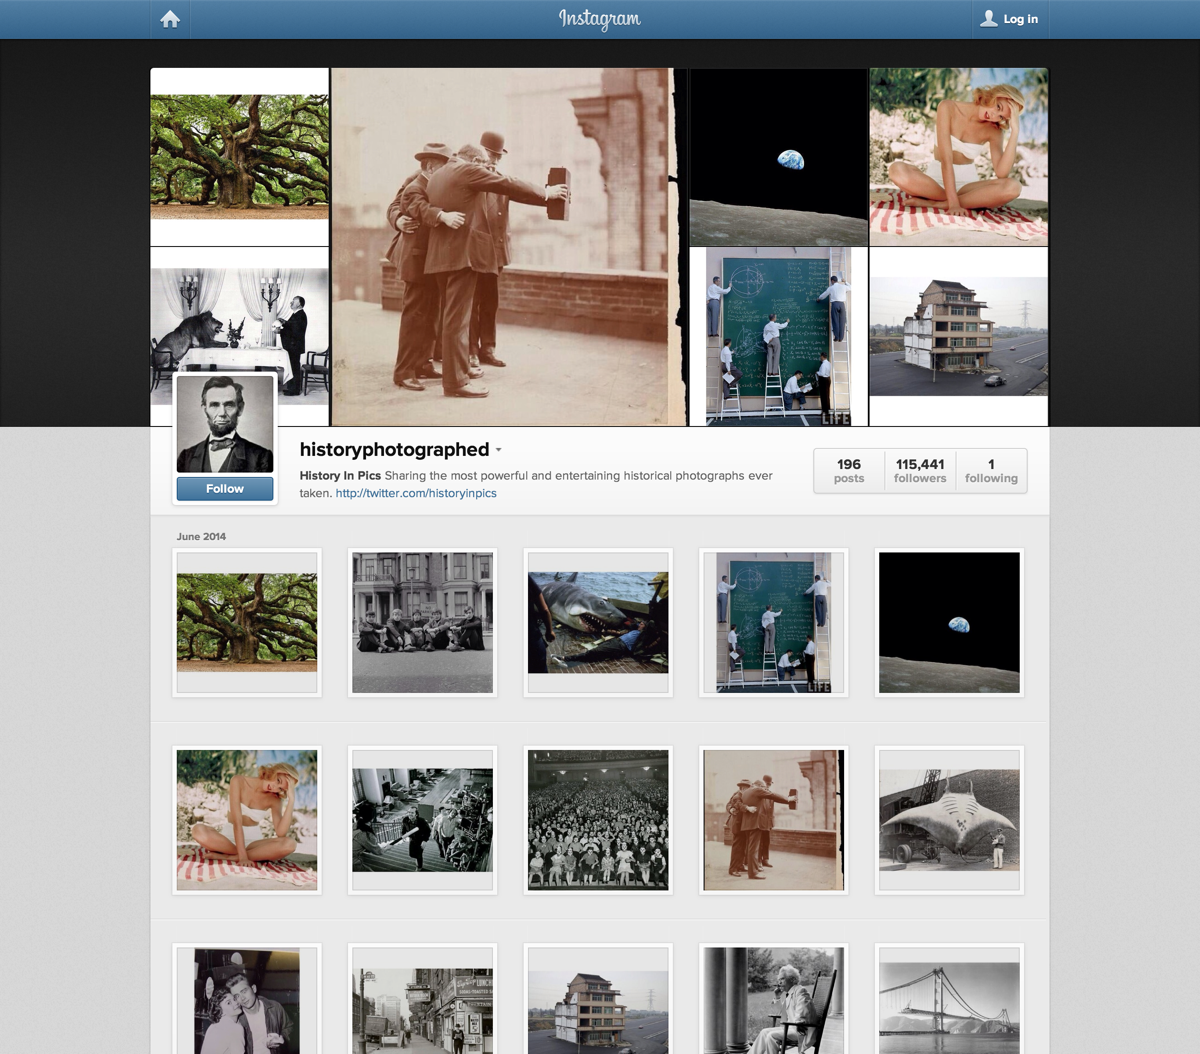 historyphotographed on Instagram (20140702)